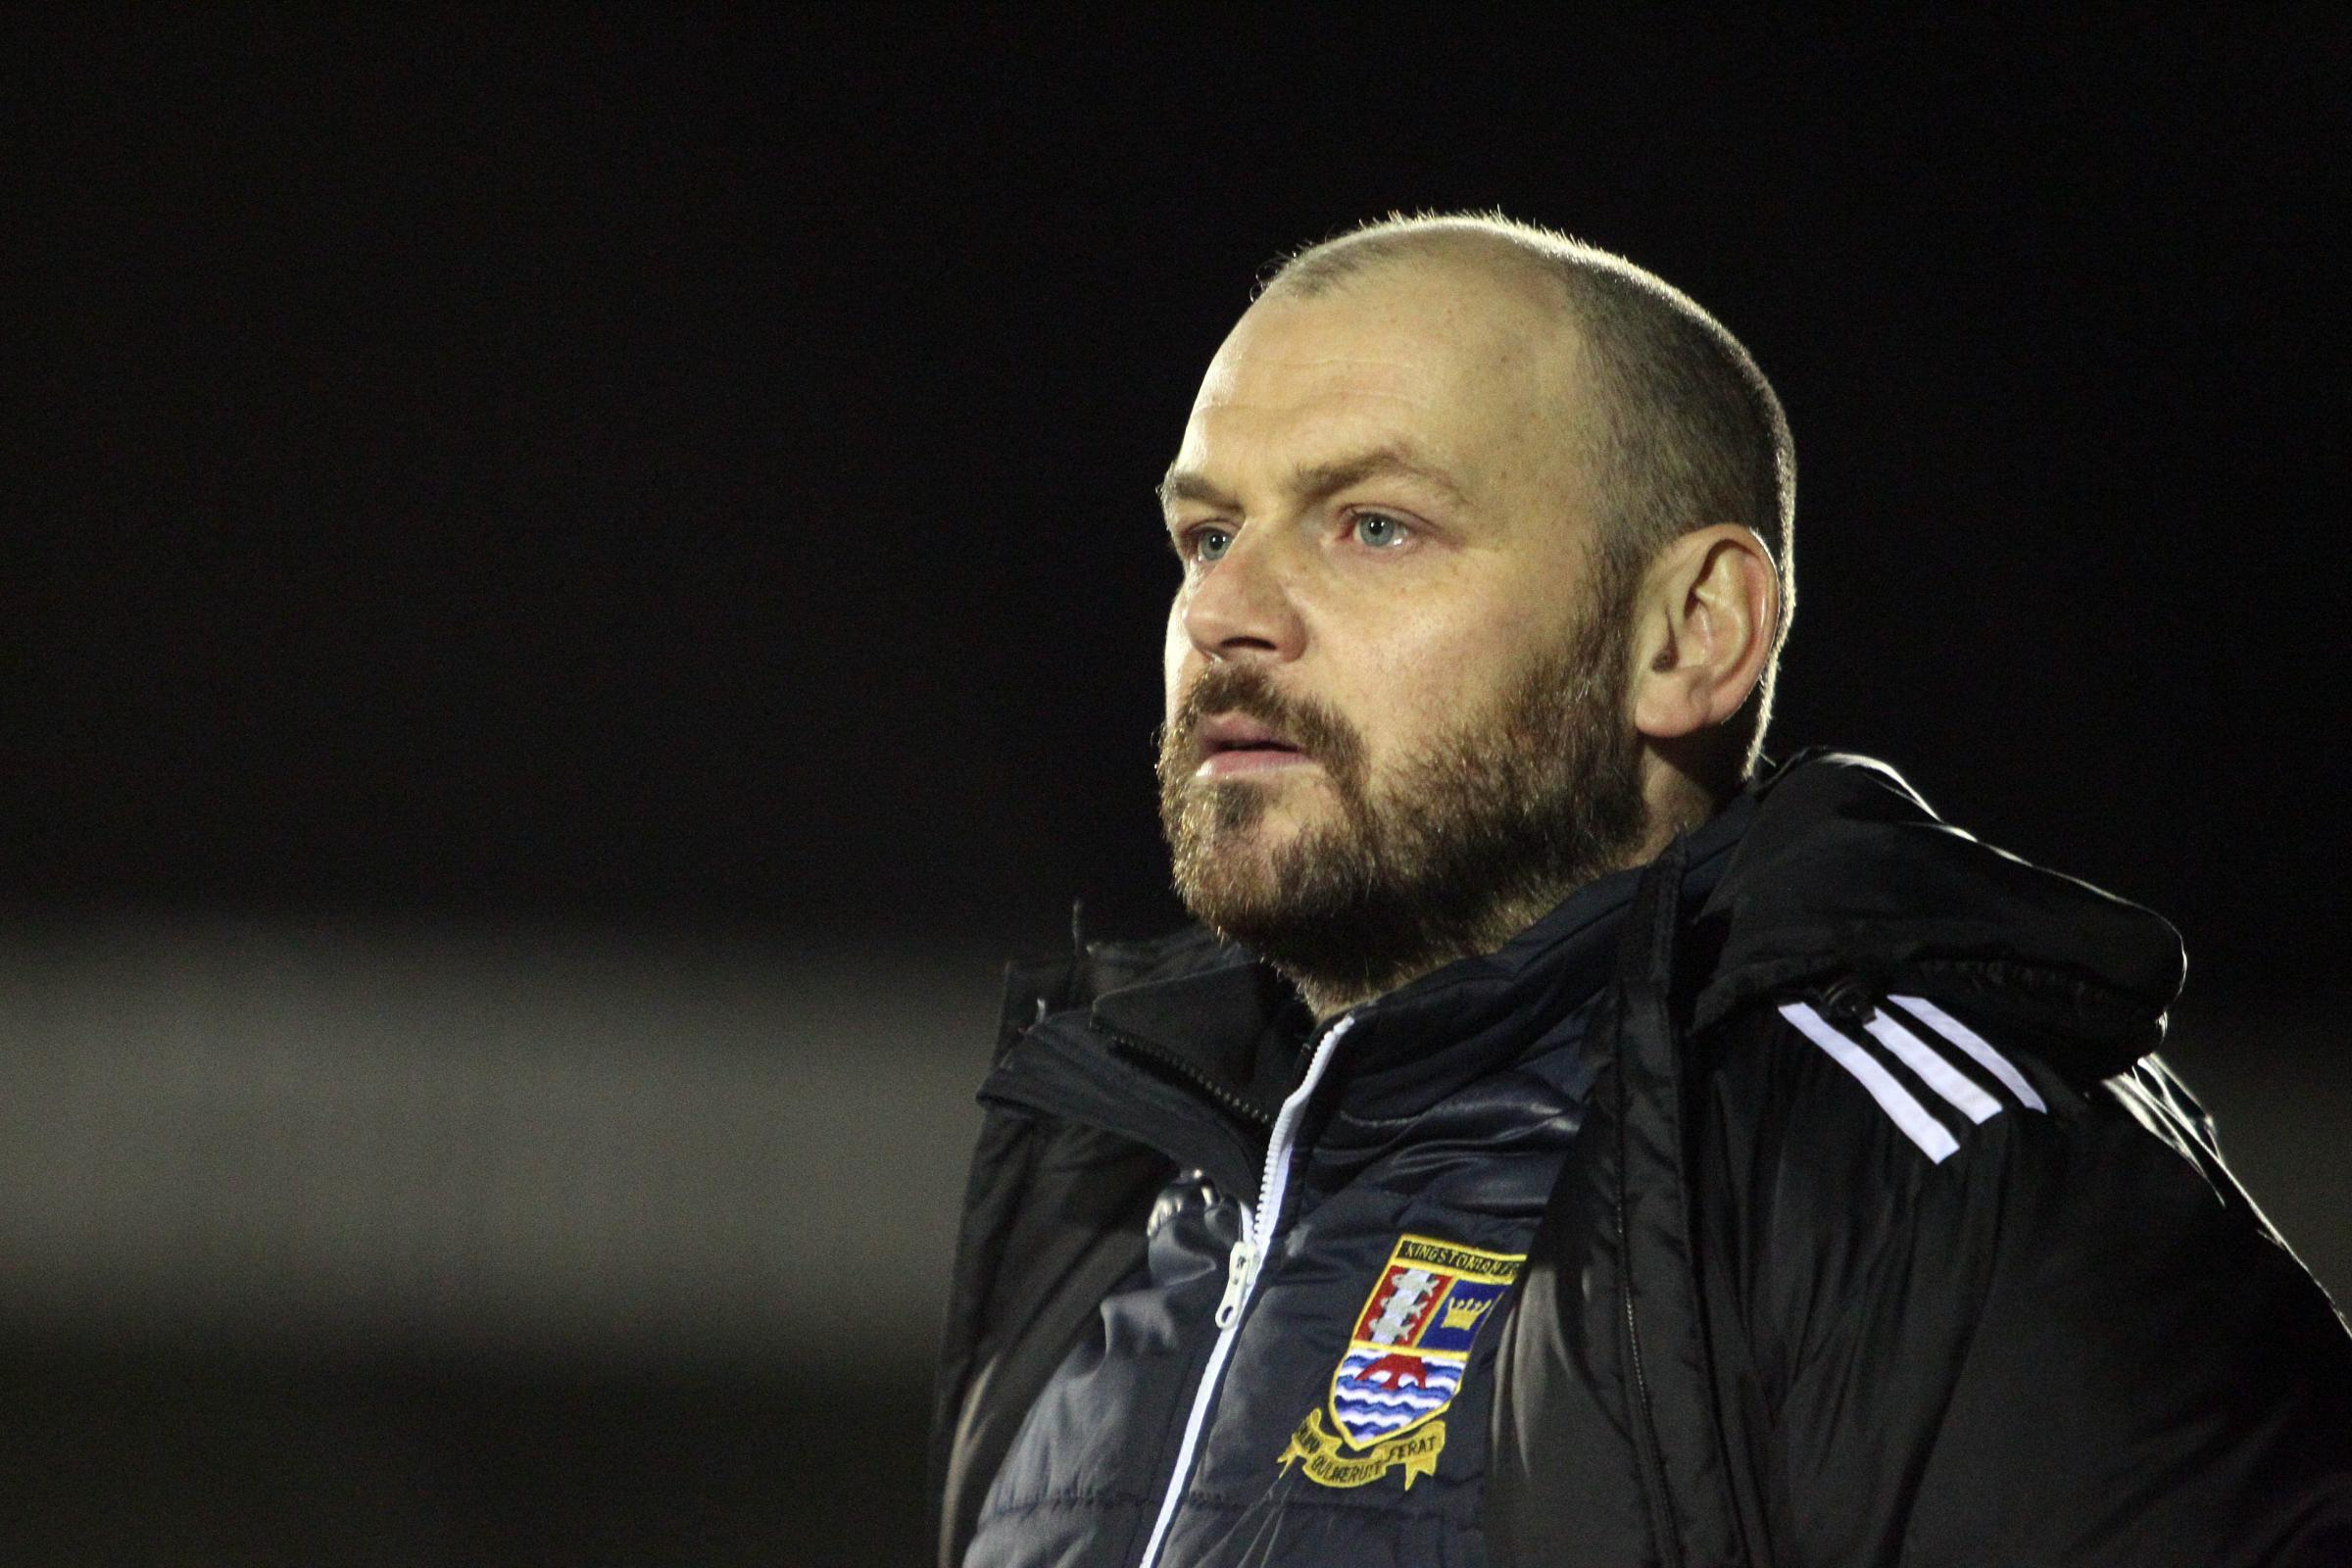 Fate: Ks' play-off chances are out of their hands, much to manager Tommy Williams' disappointment